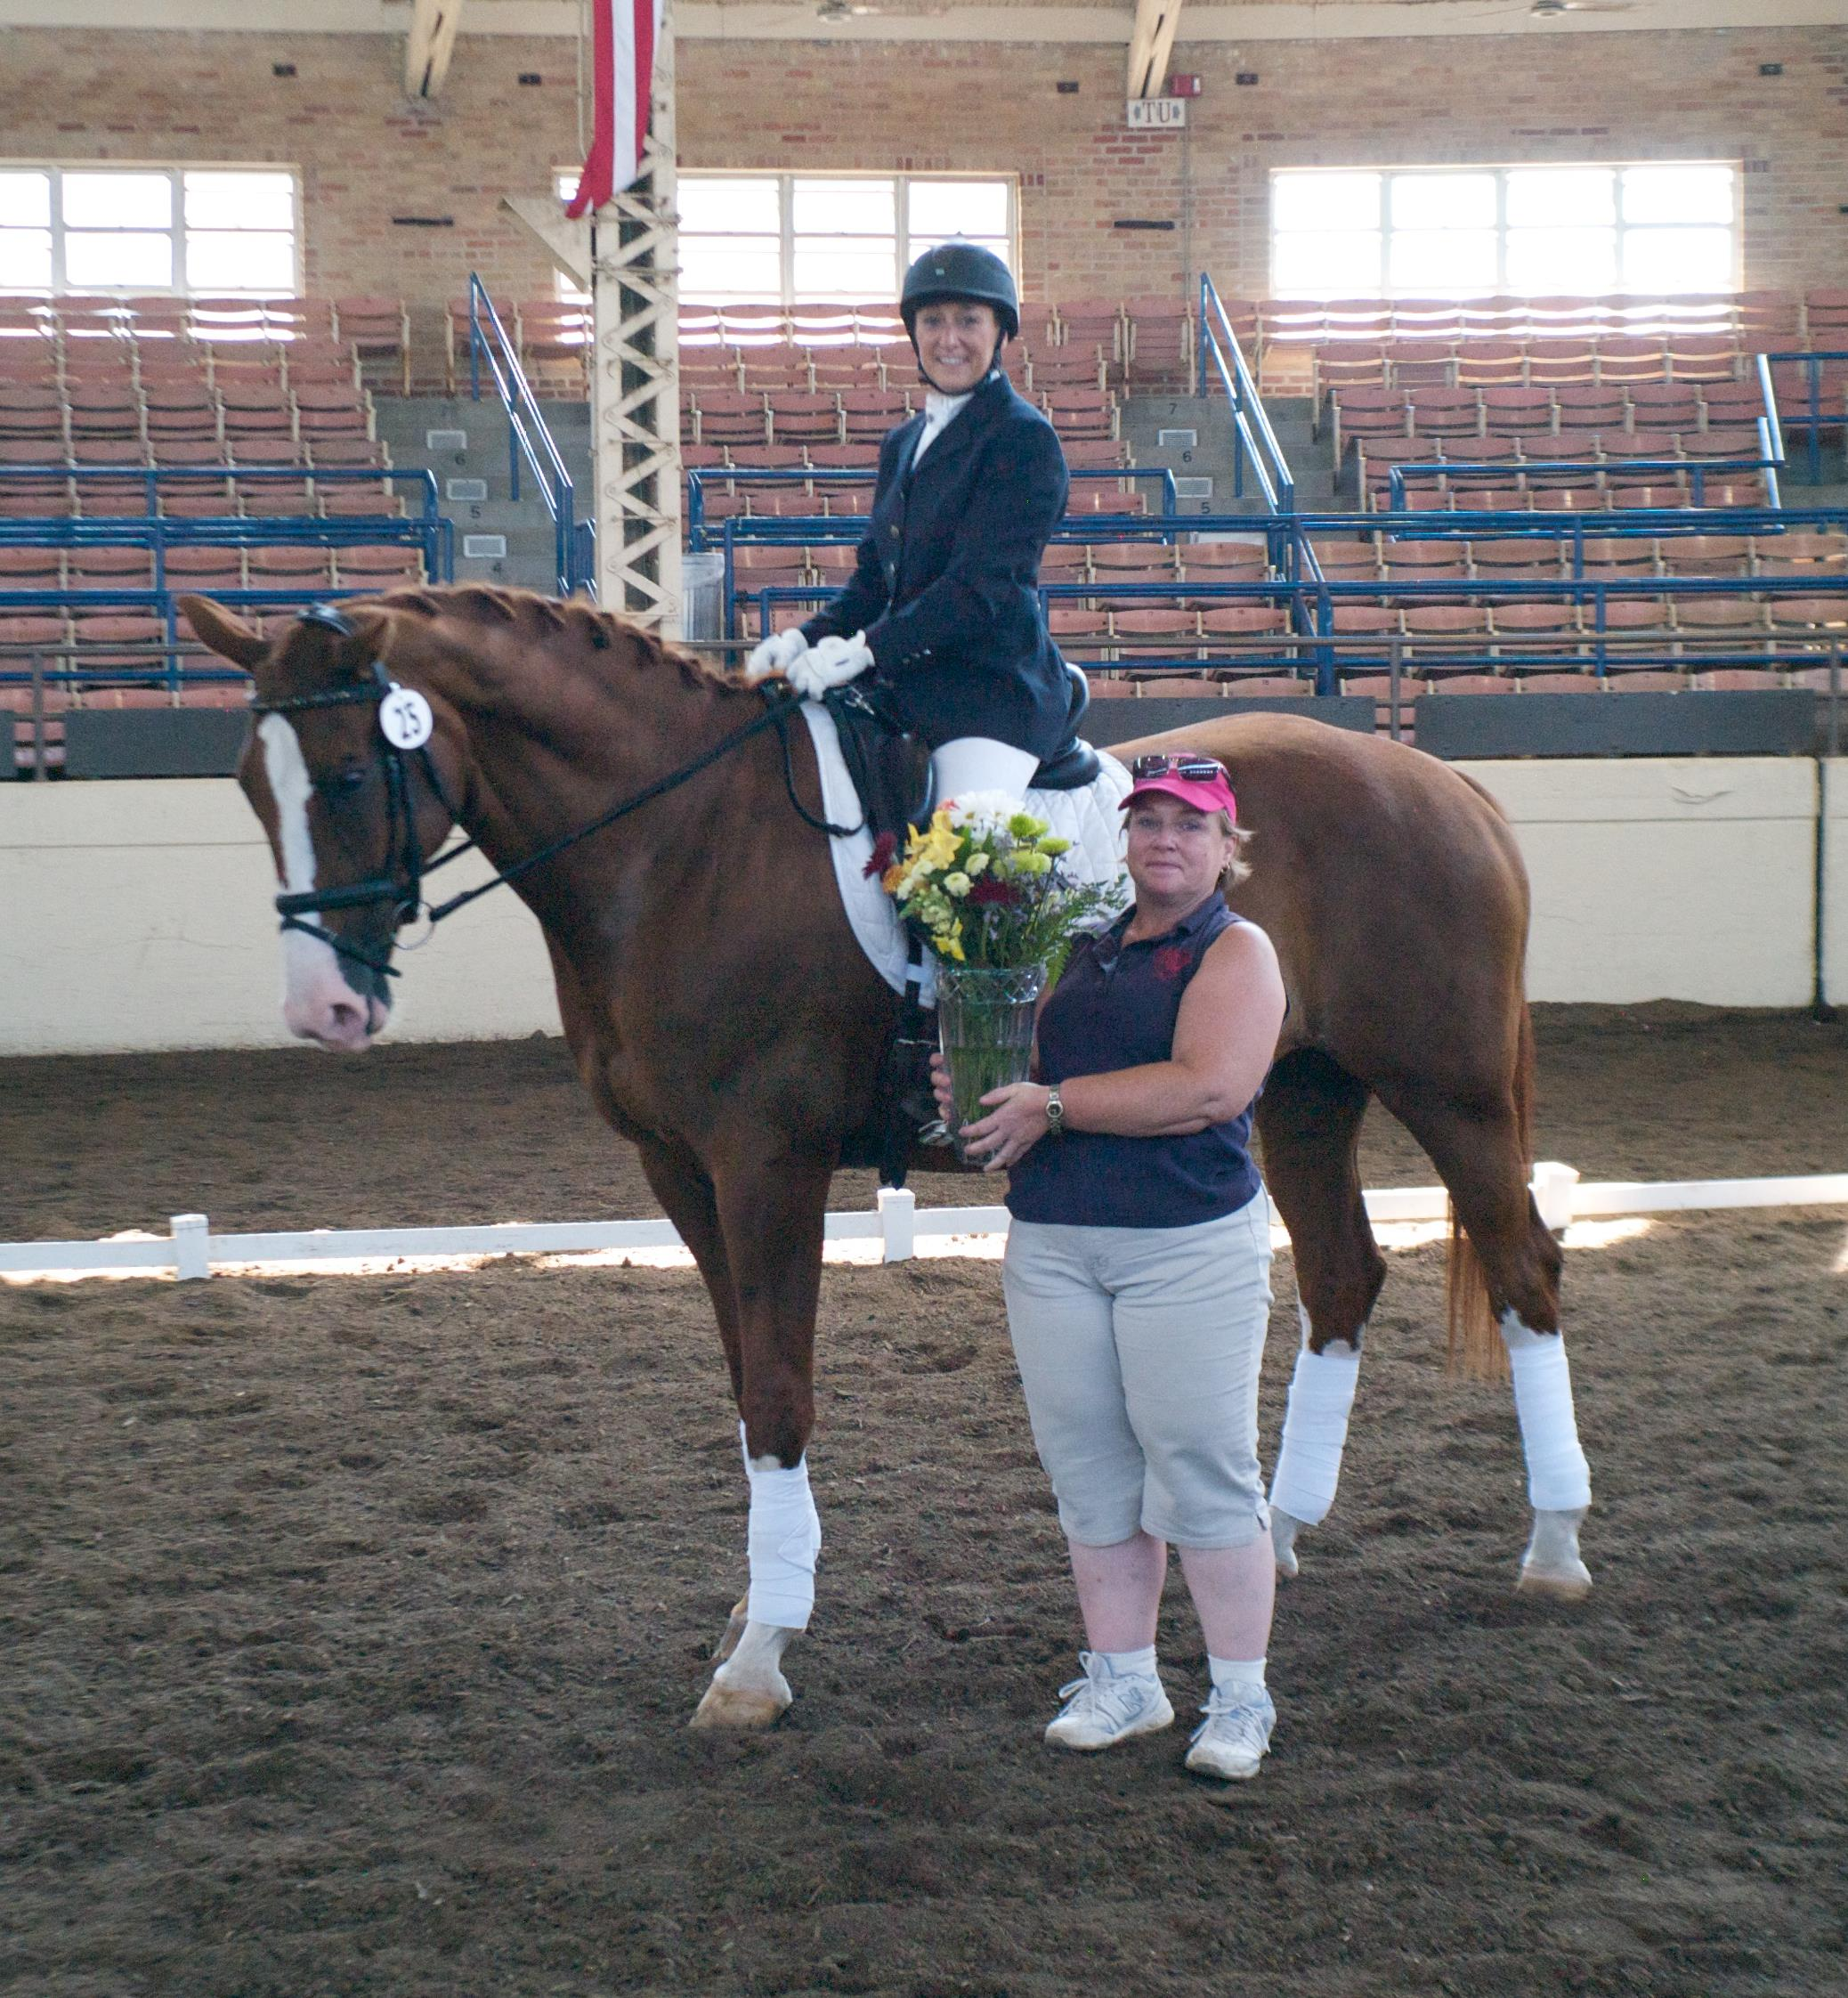 CLD Vice-President Judy Nordstrom atop Ghinger Ale with Paula Briney presenting the Cheryl Finke Memorial Award for Highest Scoring Freestyle    (photo by Steve Todd, Studio 131)